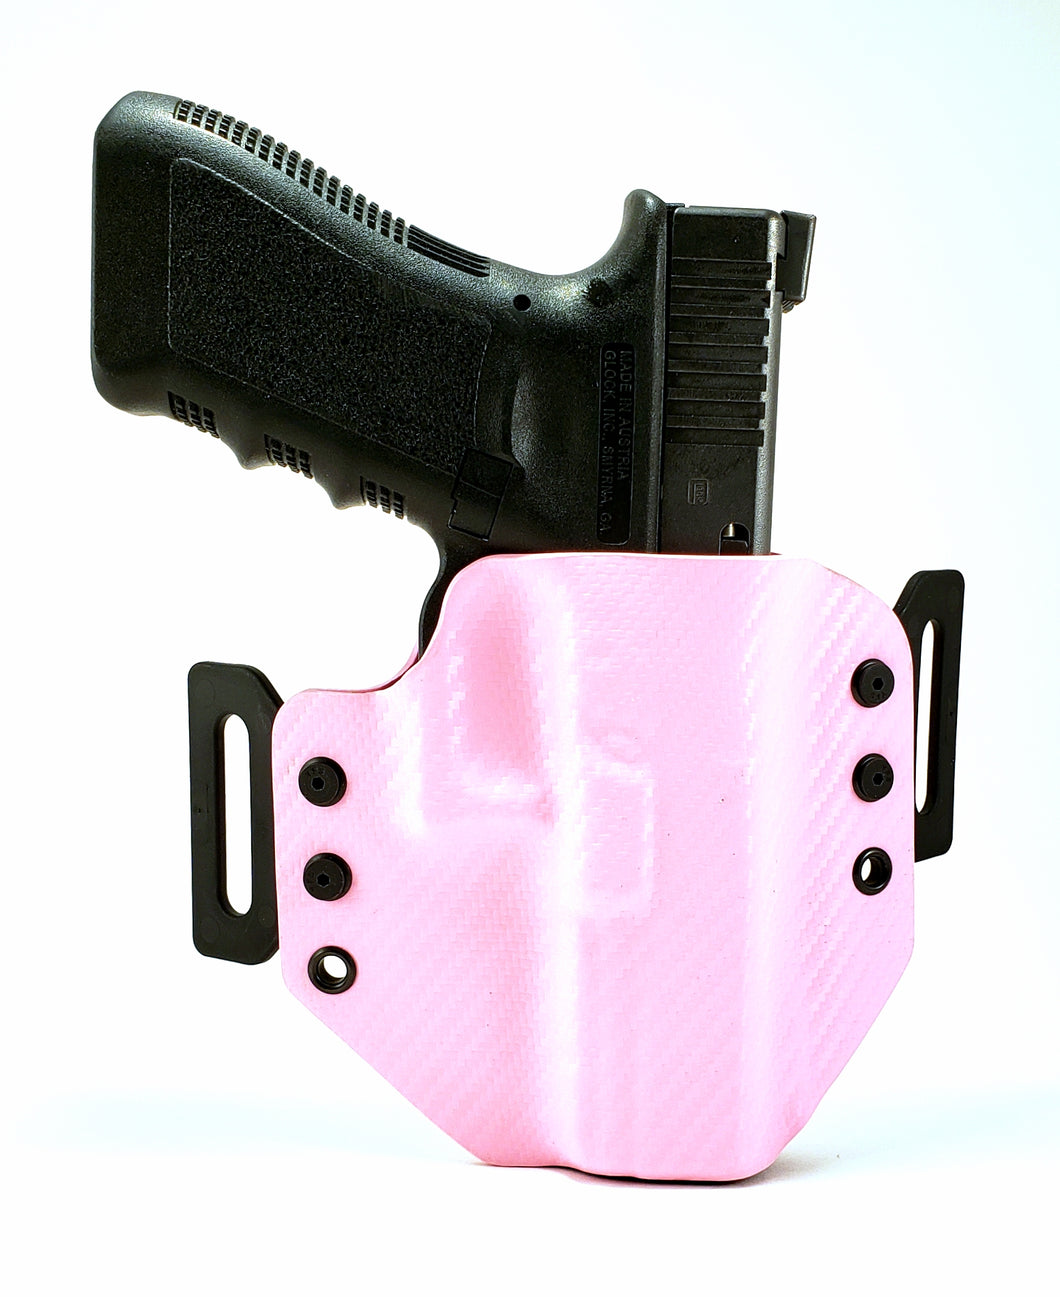 Sure-Fit O.W.B. Holster Pink Carbon (RIGHT HAND) Gun Models S-W